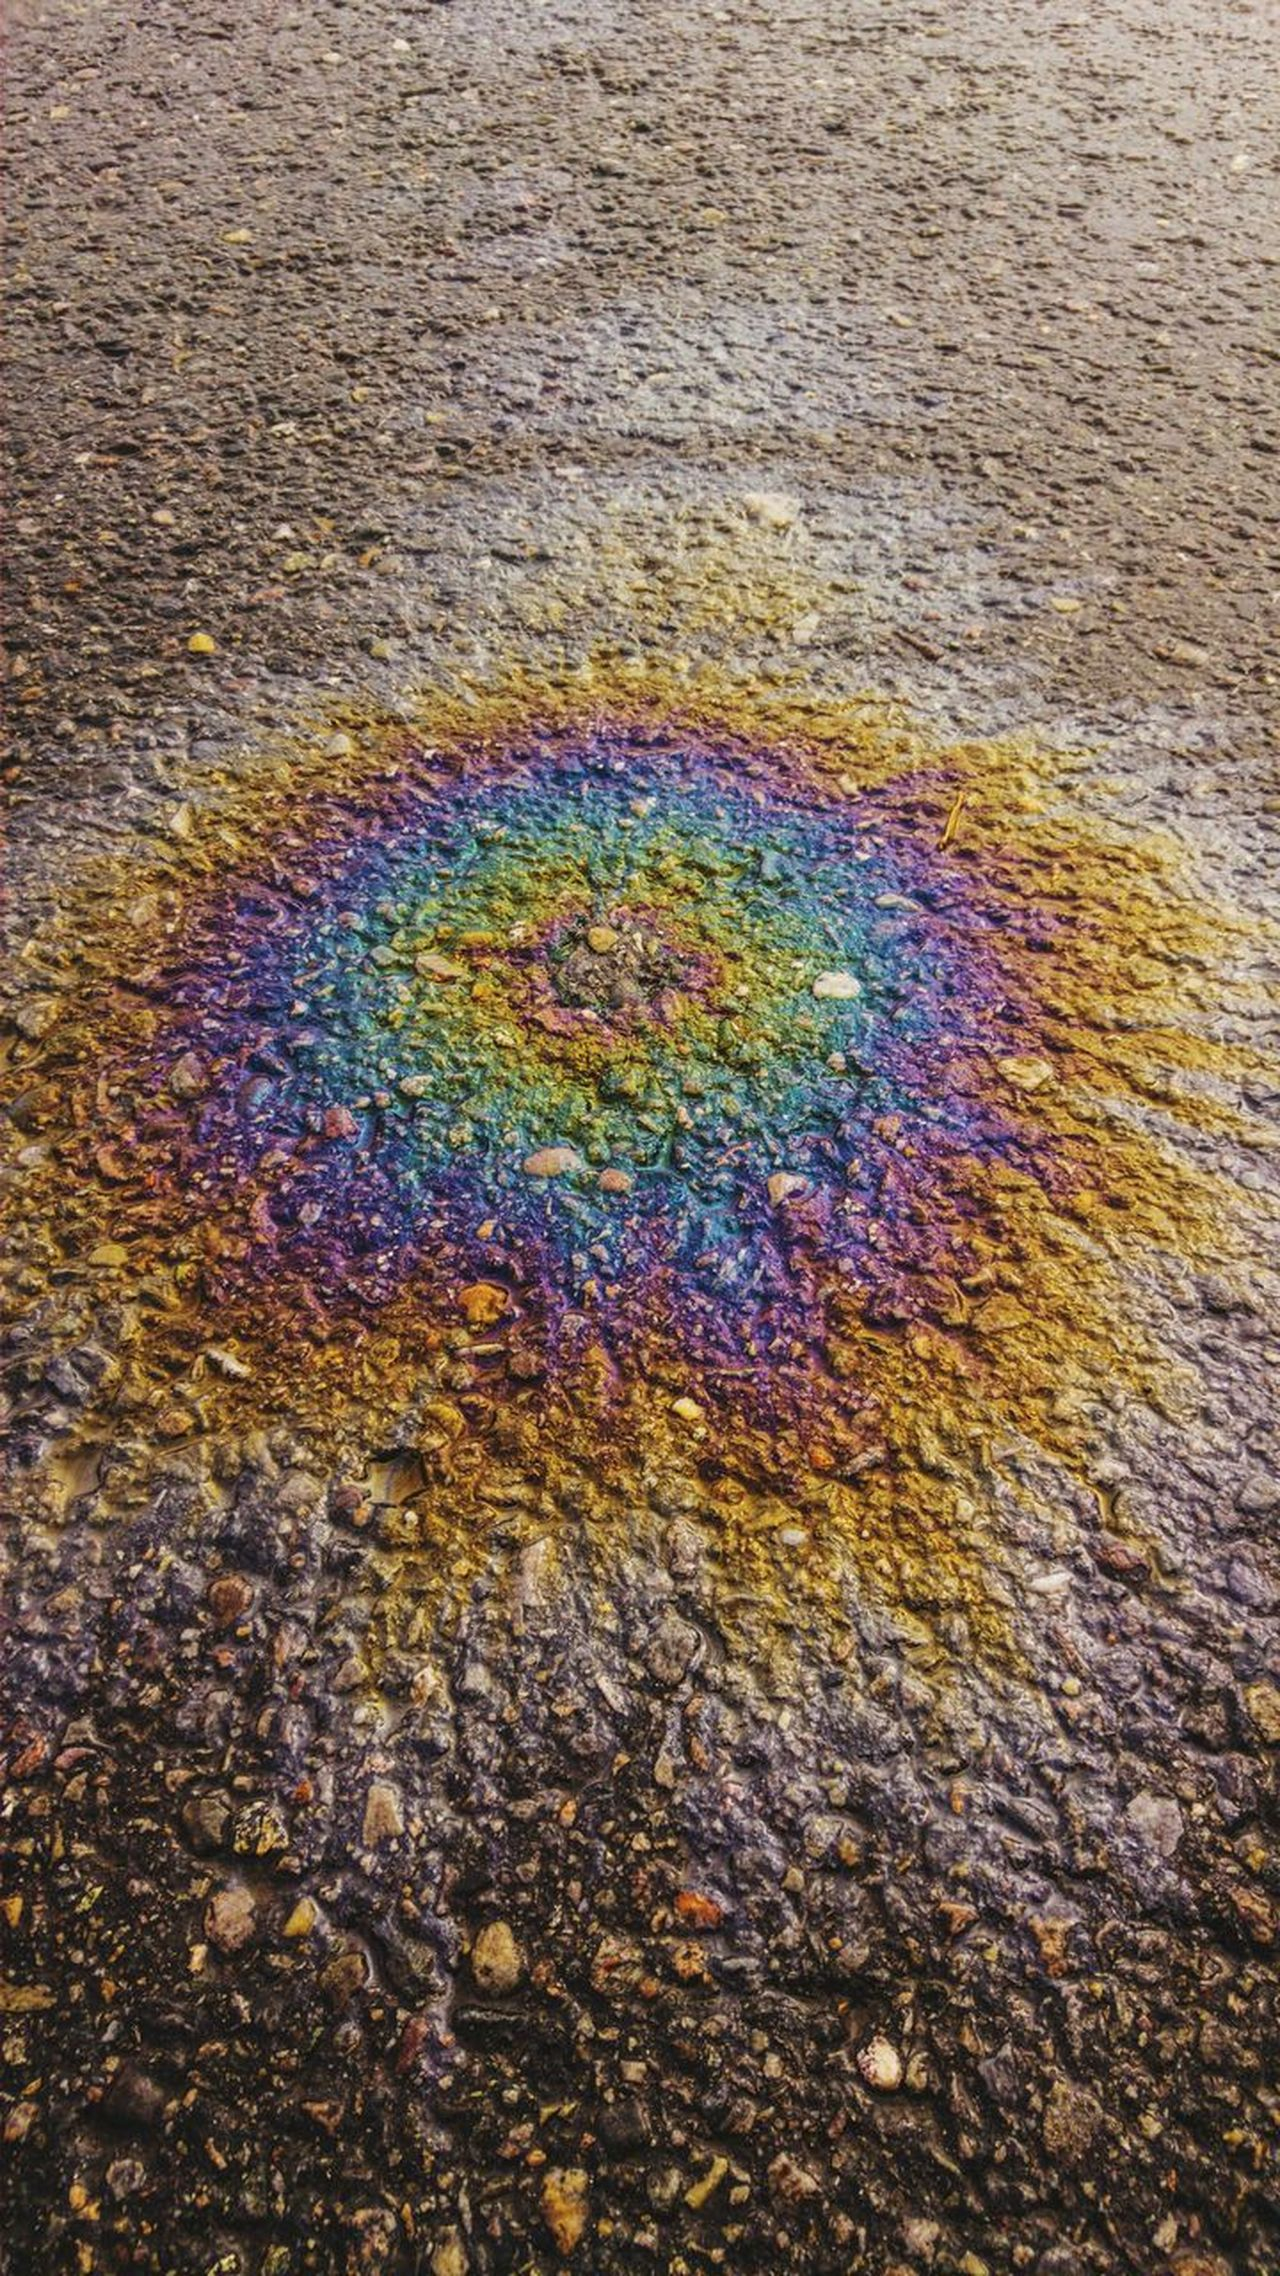 Oilsick Oil Spill Pollution Gasoline Multi Colored Road No People Oil Industry Close-up Accidental Art Rainbow Spectrum